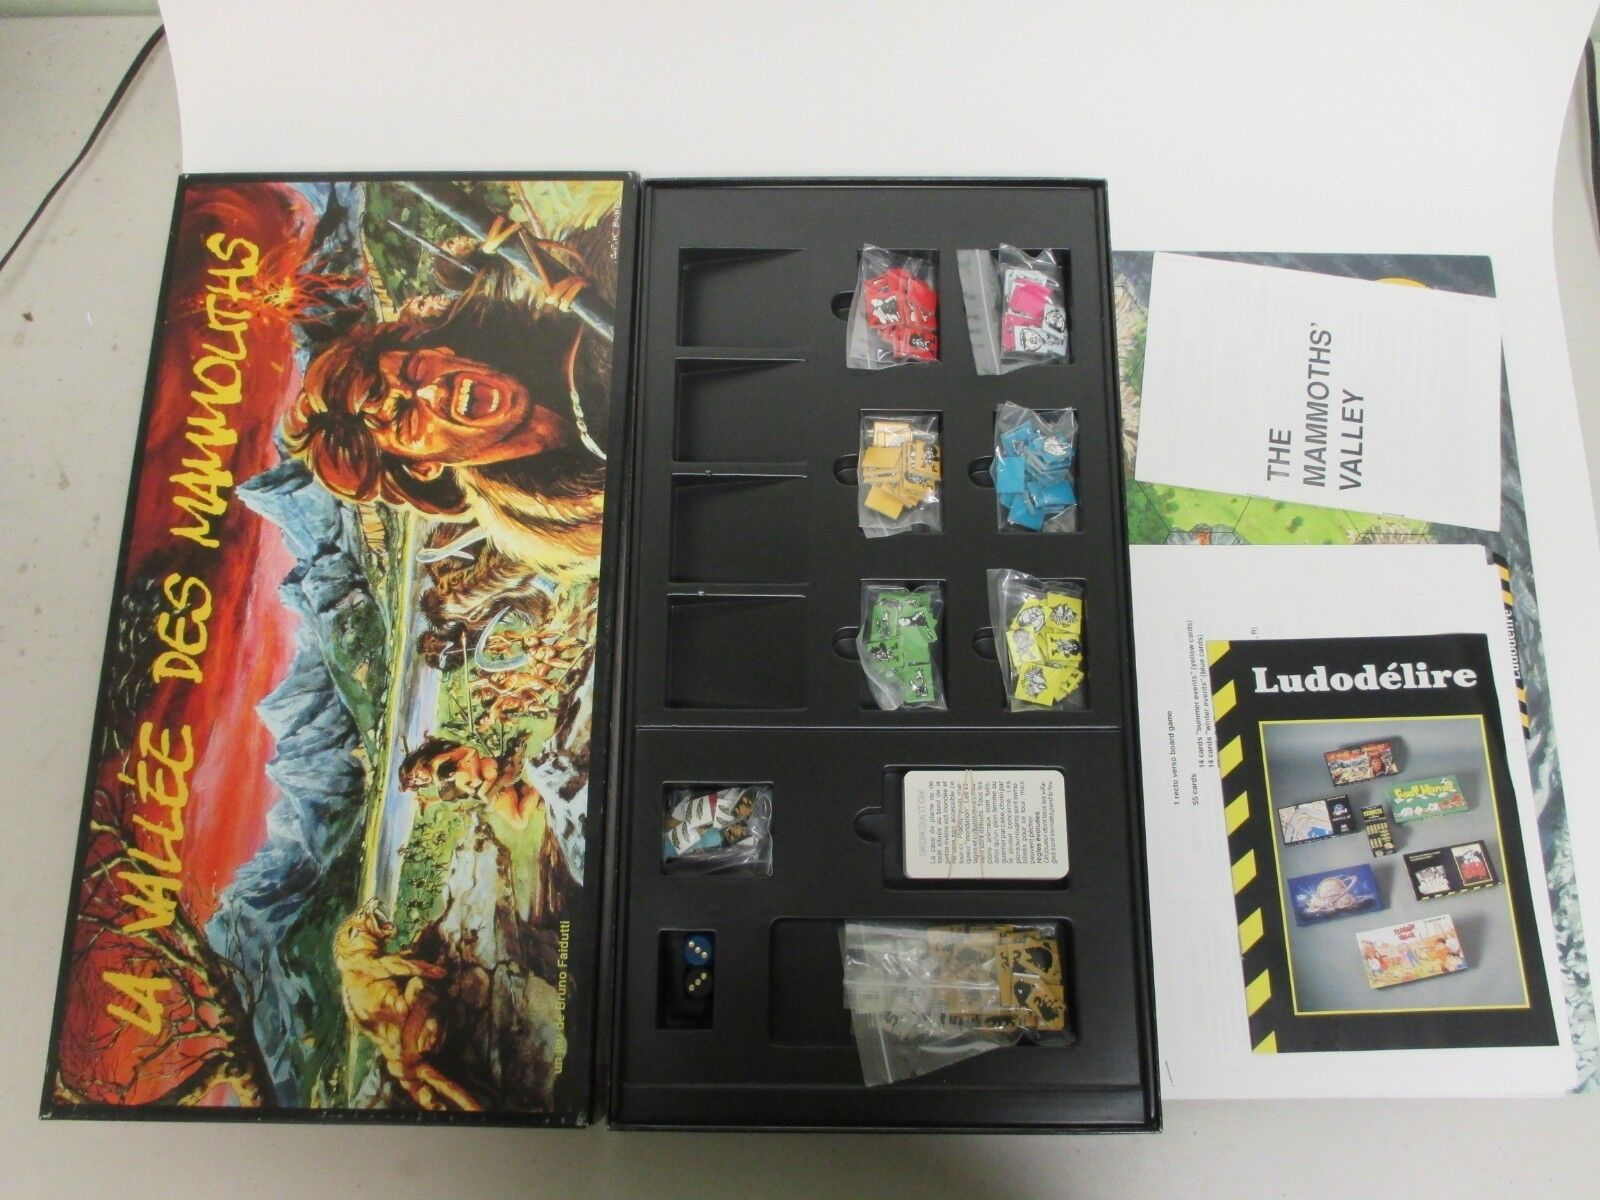 RARE  LA VALLEE DES MAMMOUTHS MAMMOUTHS Valley  Board Game-B Faidutti Ludodelire